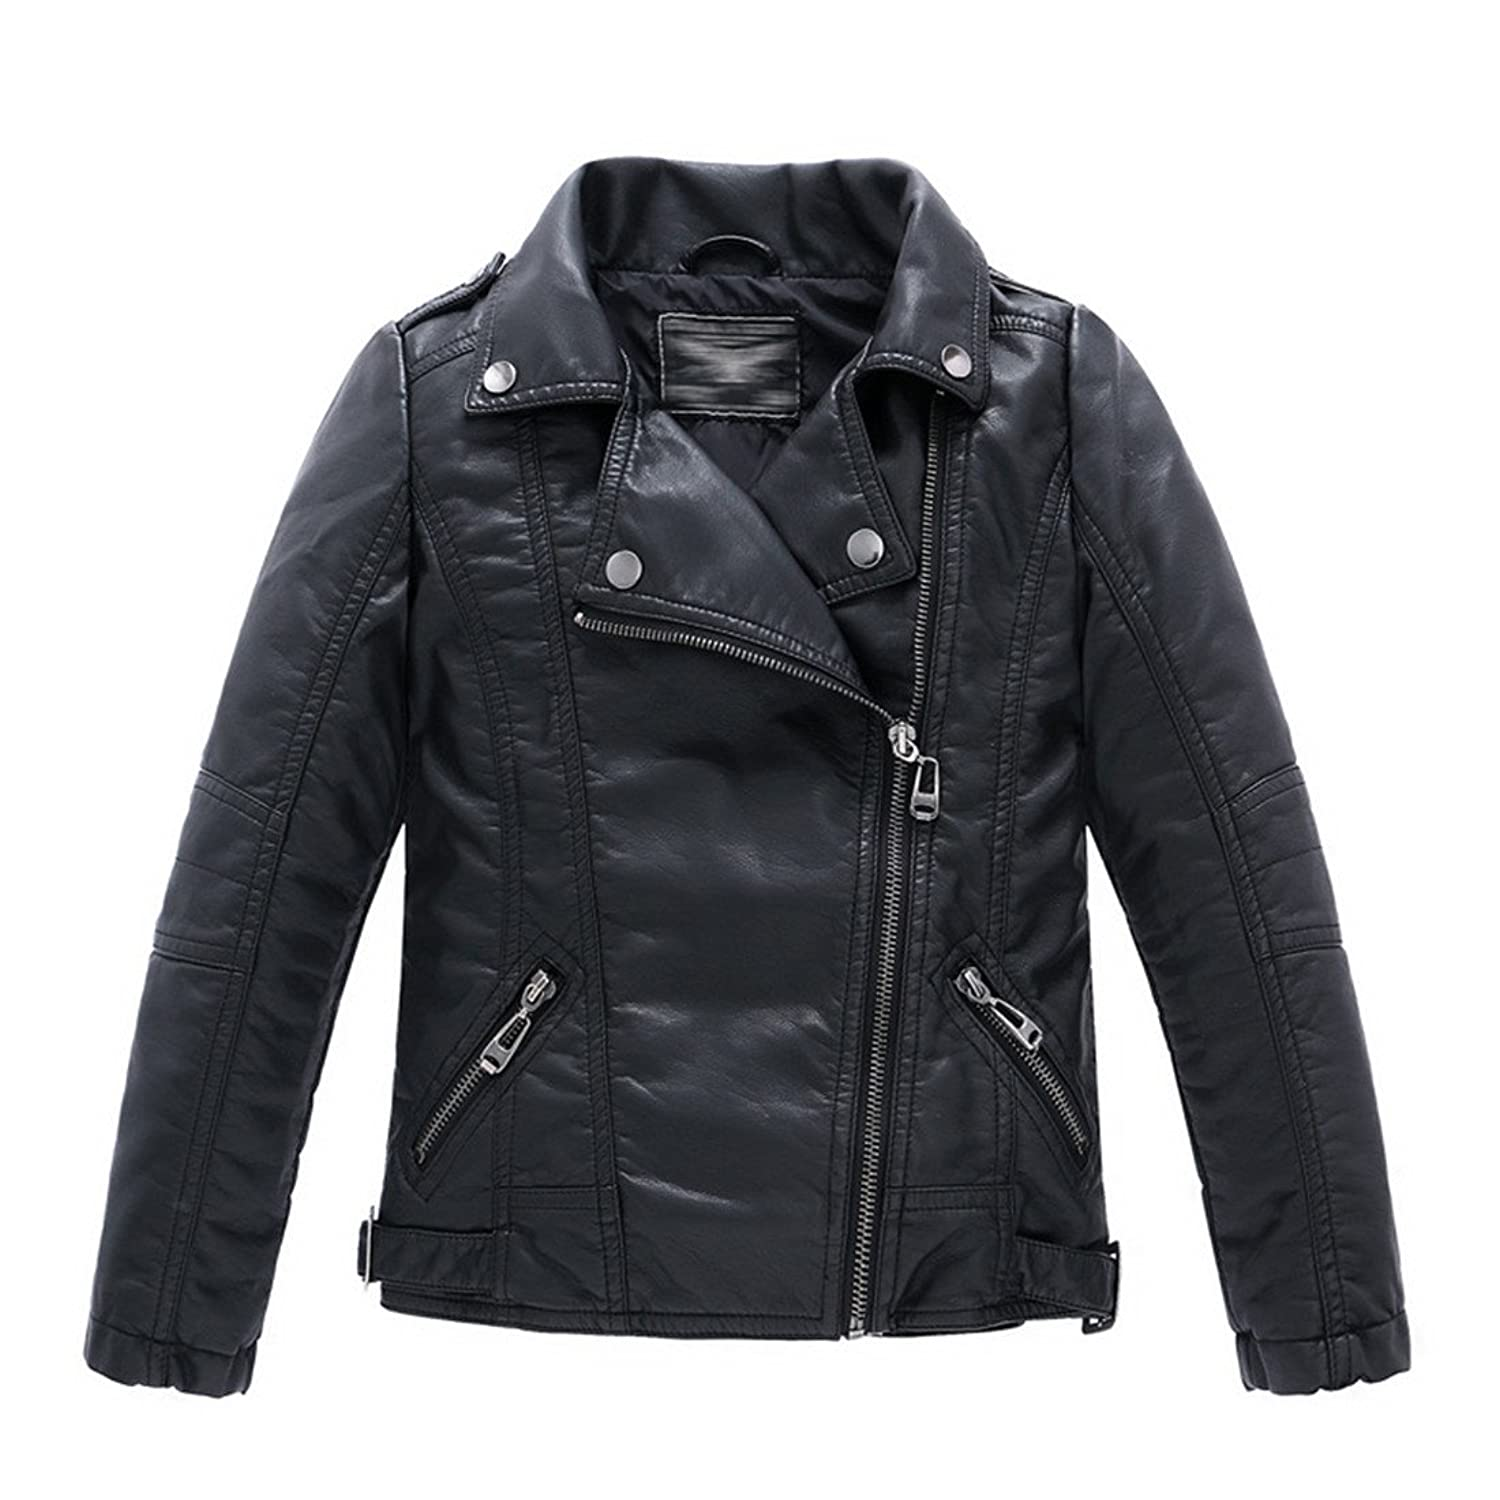 ljyh children s collar motorcycle leather coat boys #2: 613wdz4vmwl ul1500